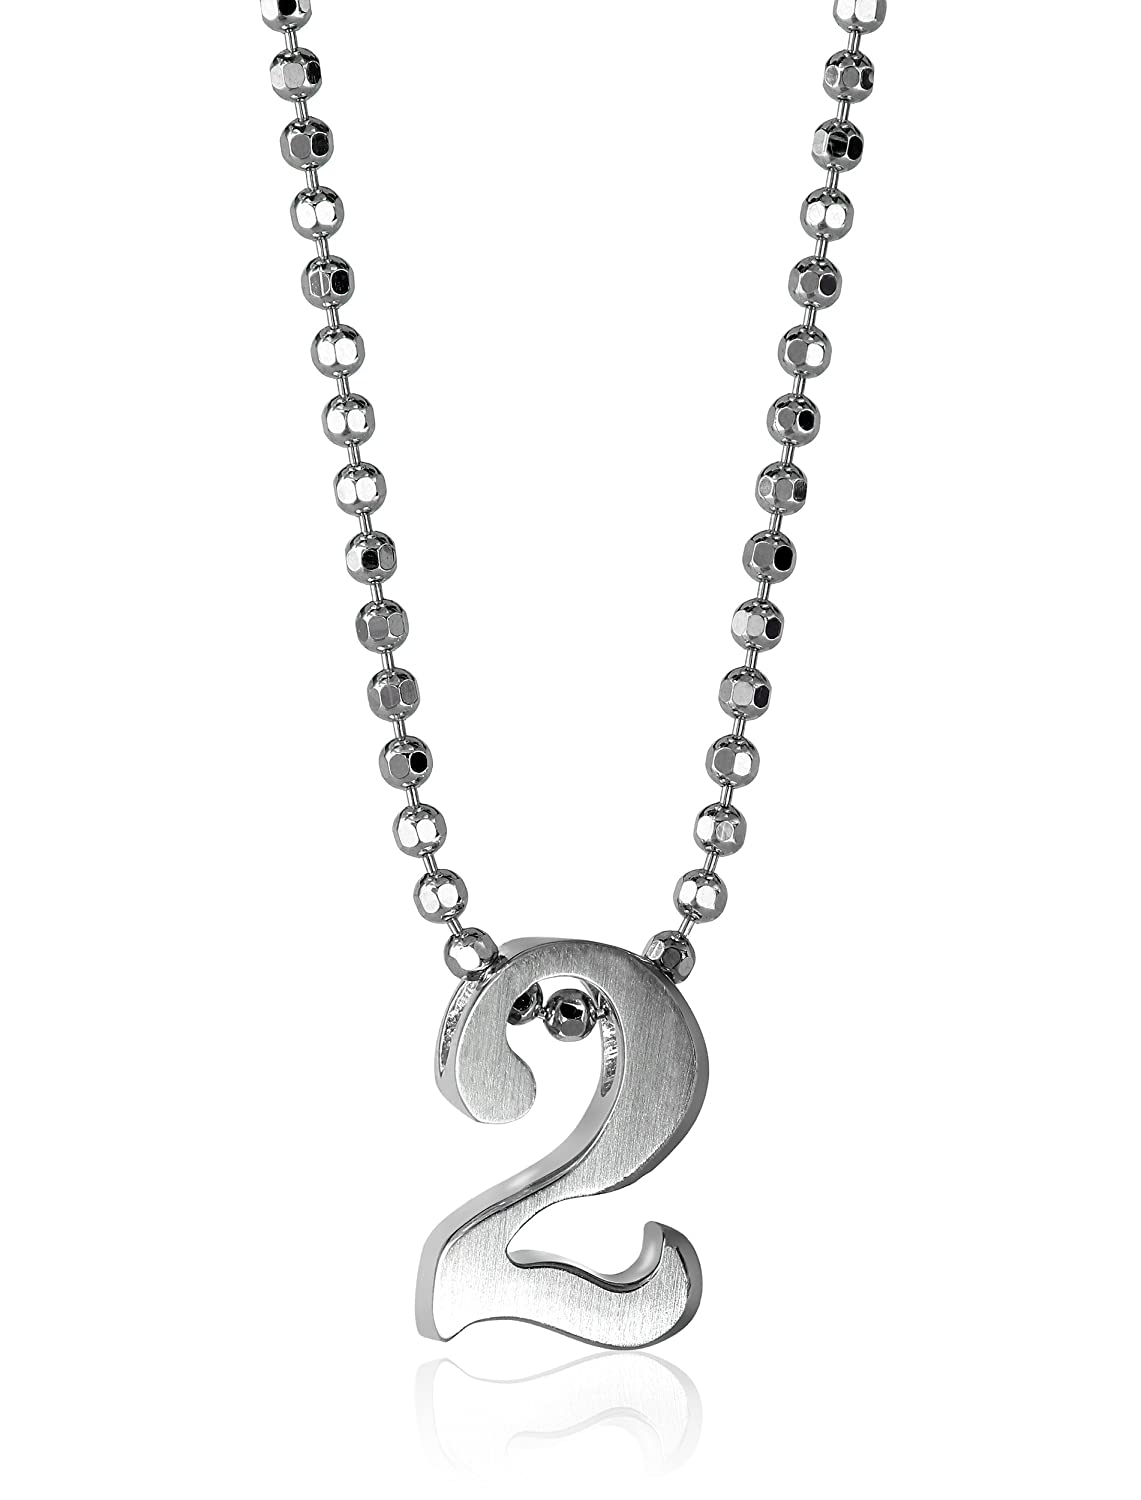 Alex woo little numbers sterling silver number pendant necklace 16 alex woo little numbers sterling silver number pendant necklace 16 aloadofball Image collections